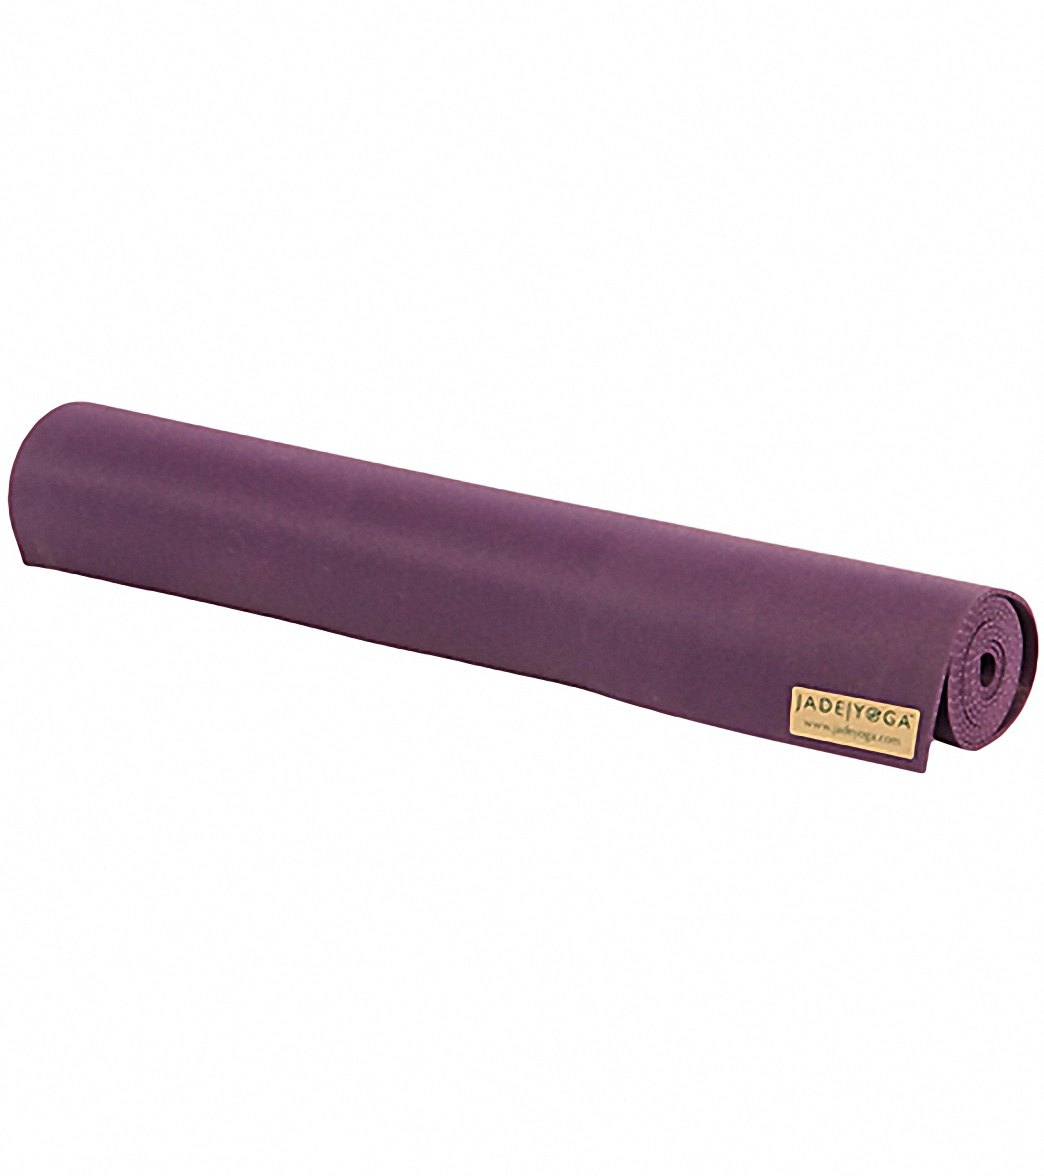 Jade Yoga Travel Long Natural Rubber Yoga Mat 74 3mm At Yogaoutlet Com